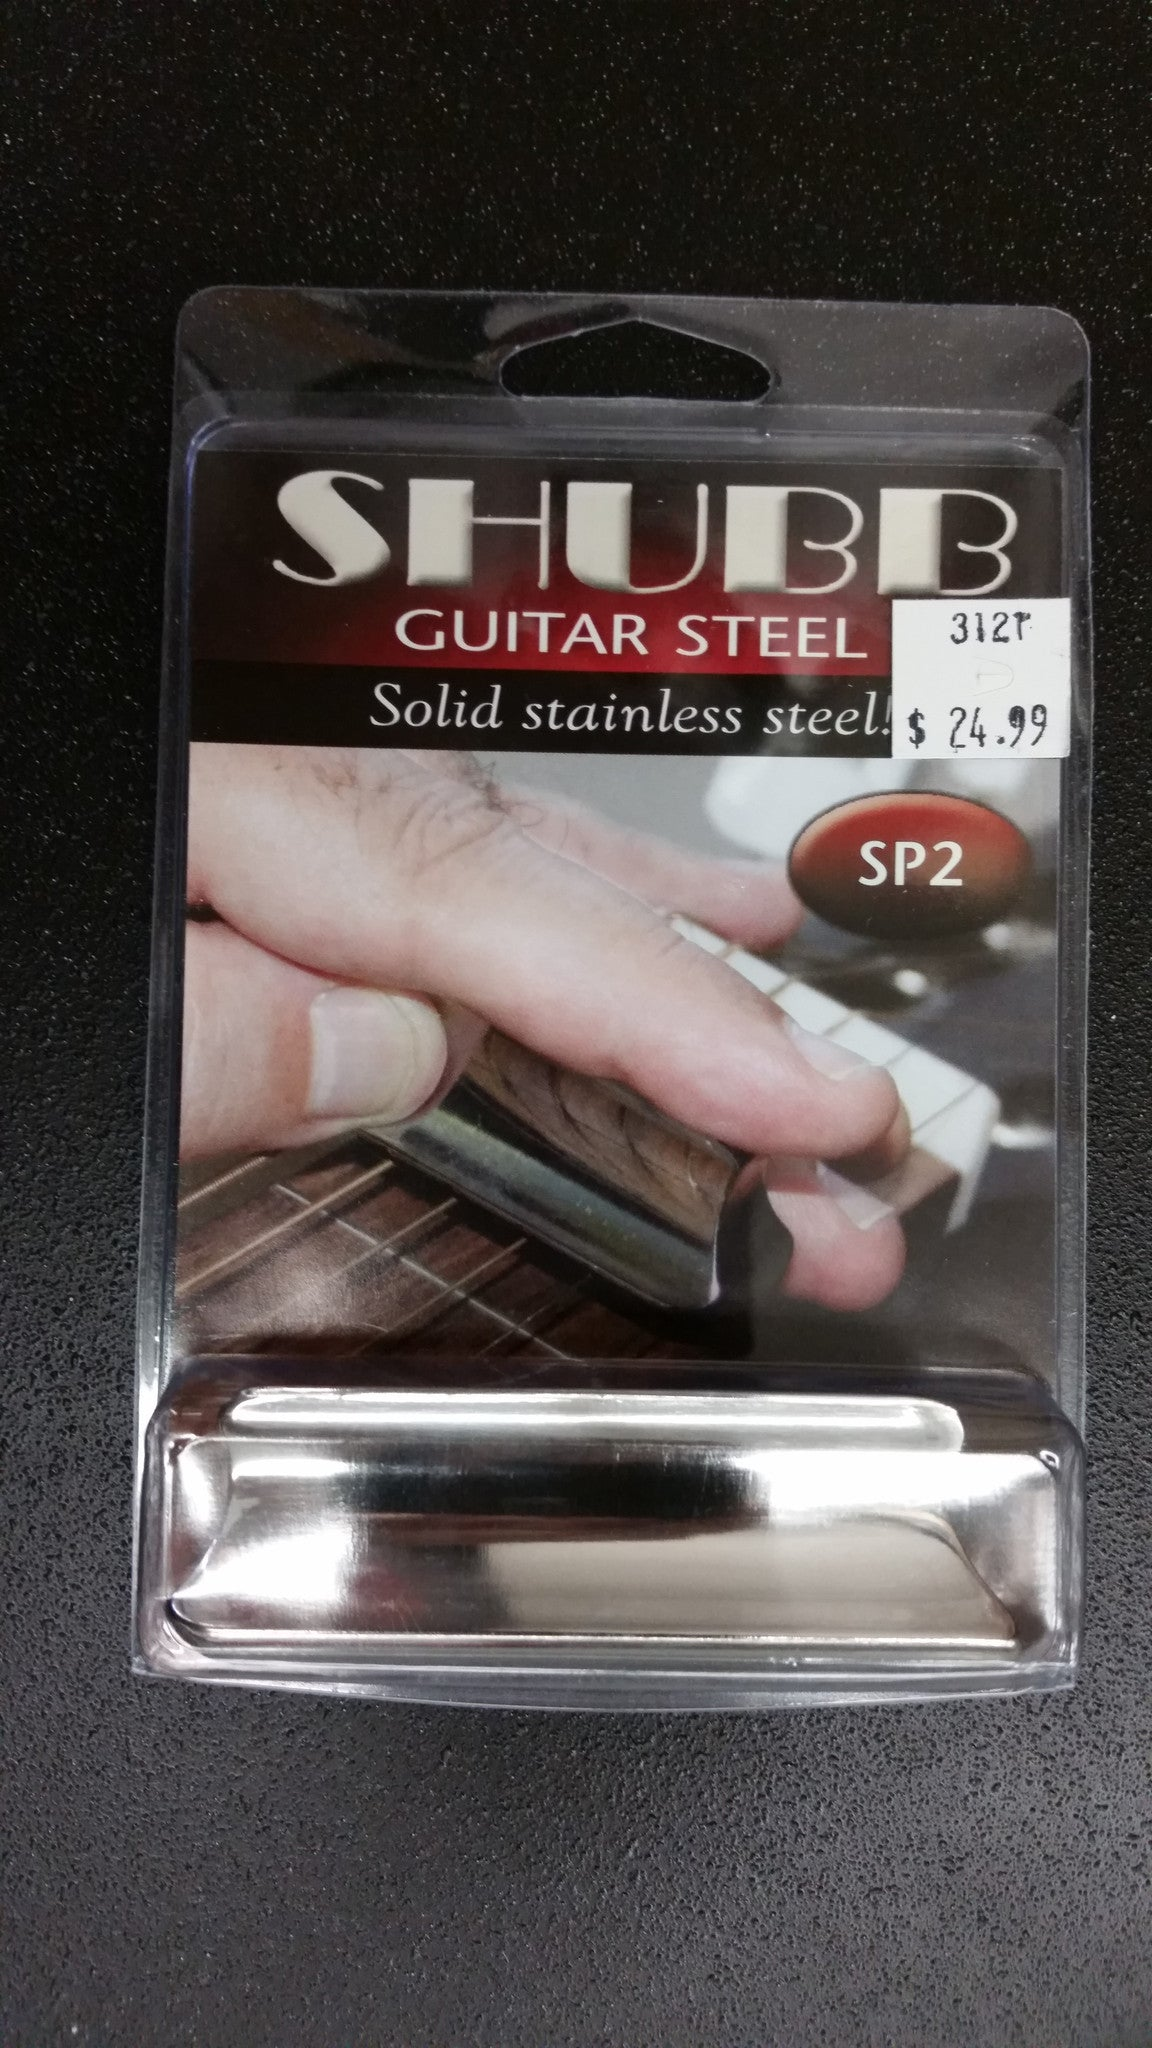 Shubb SP2 Guitar Steel